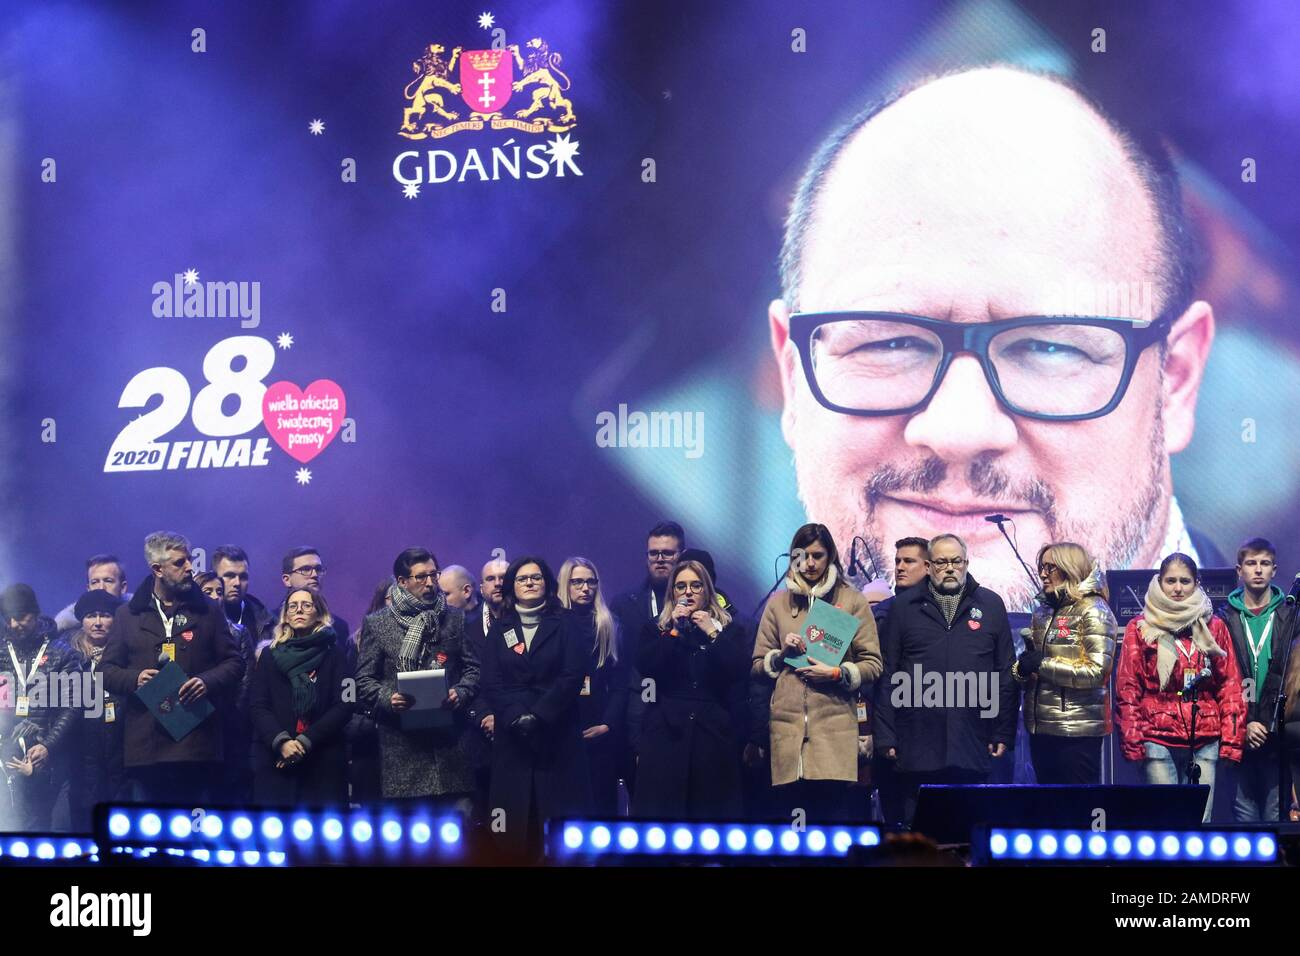 Ion 2020 Christmas Shows Gdansk, Poland. 12th Jan, 2020. Magdalena Adamowicz   wife of the